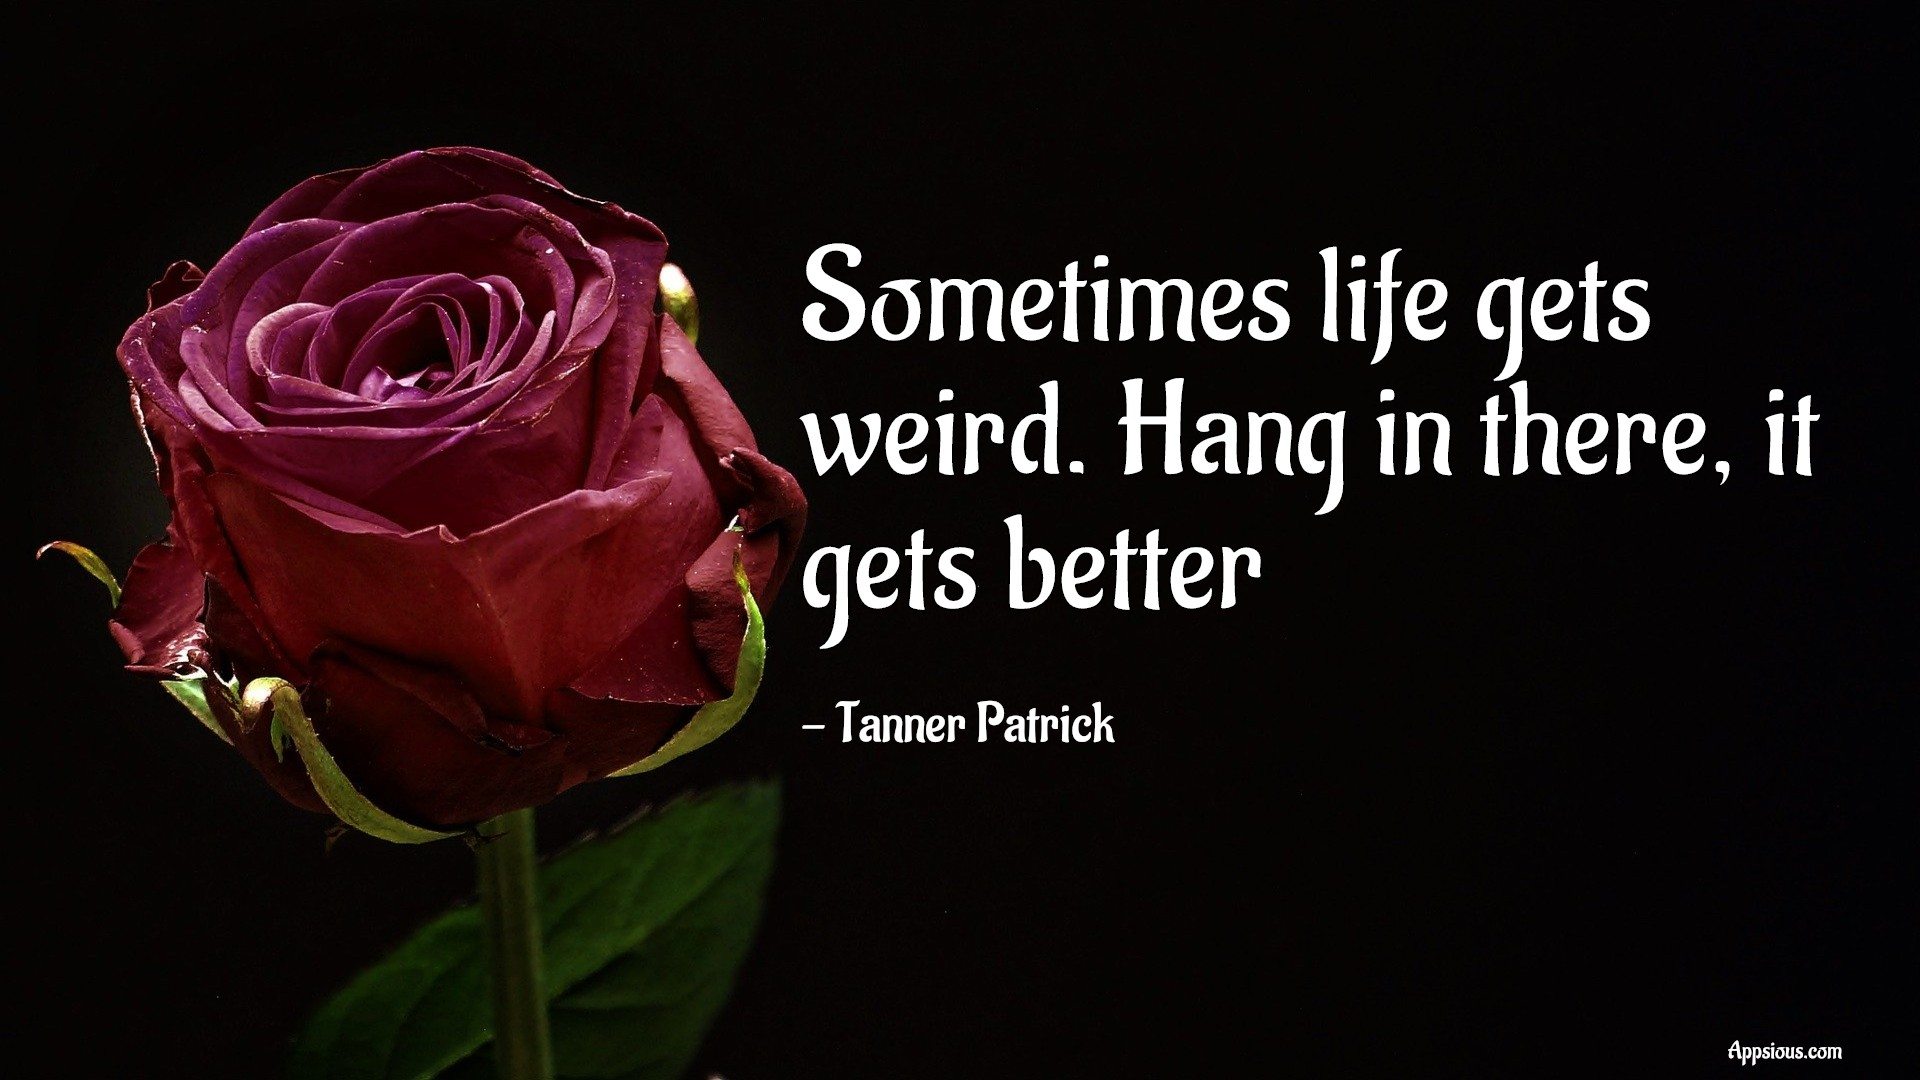 Sometimes life gets weird. Hang in there, it gets better